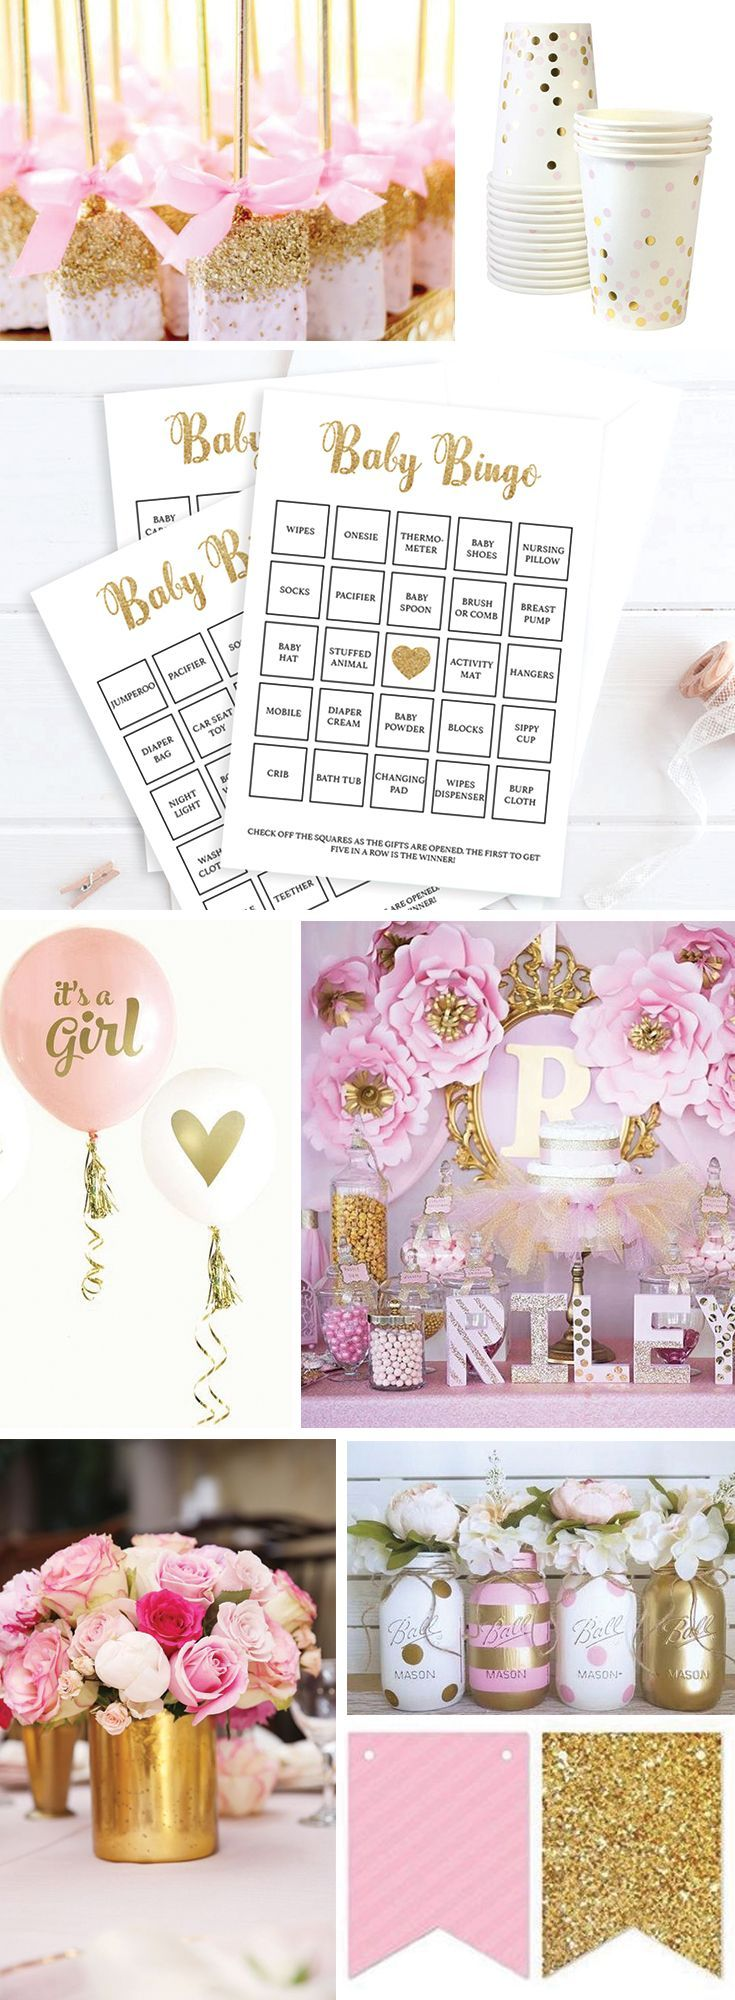 Pink and Gold Baby Shower Ideas for Girl by LittleSizzle. Baby Bingo Cards Printable Games. Let not only the mom-to-be enjoy unpacking gifts! Play Bingo with these gold glitter cards. The set has everything you need to play Baby Bingo in multiple ways.